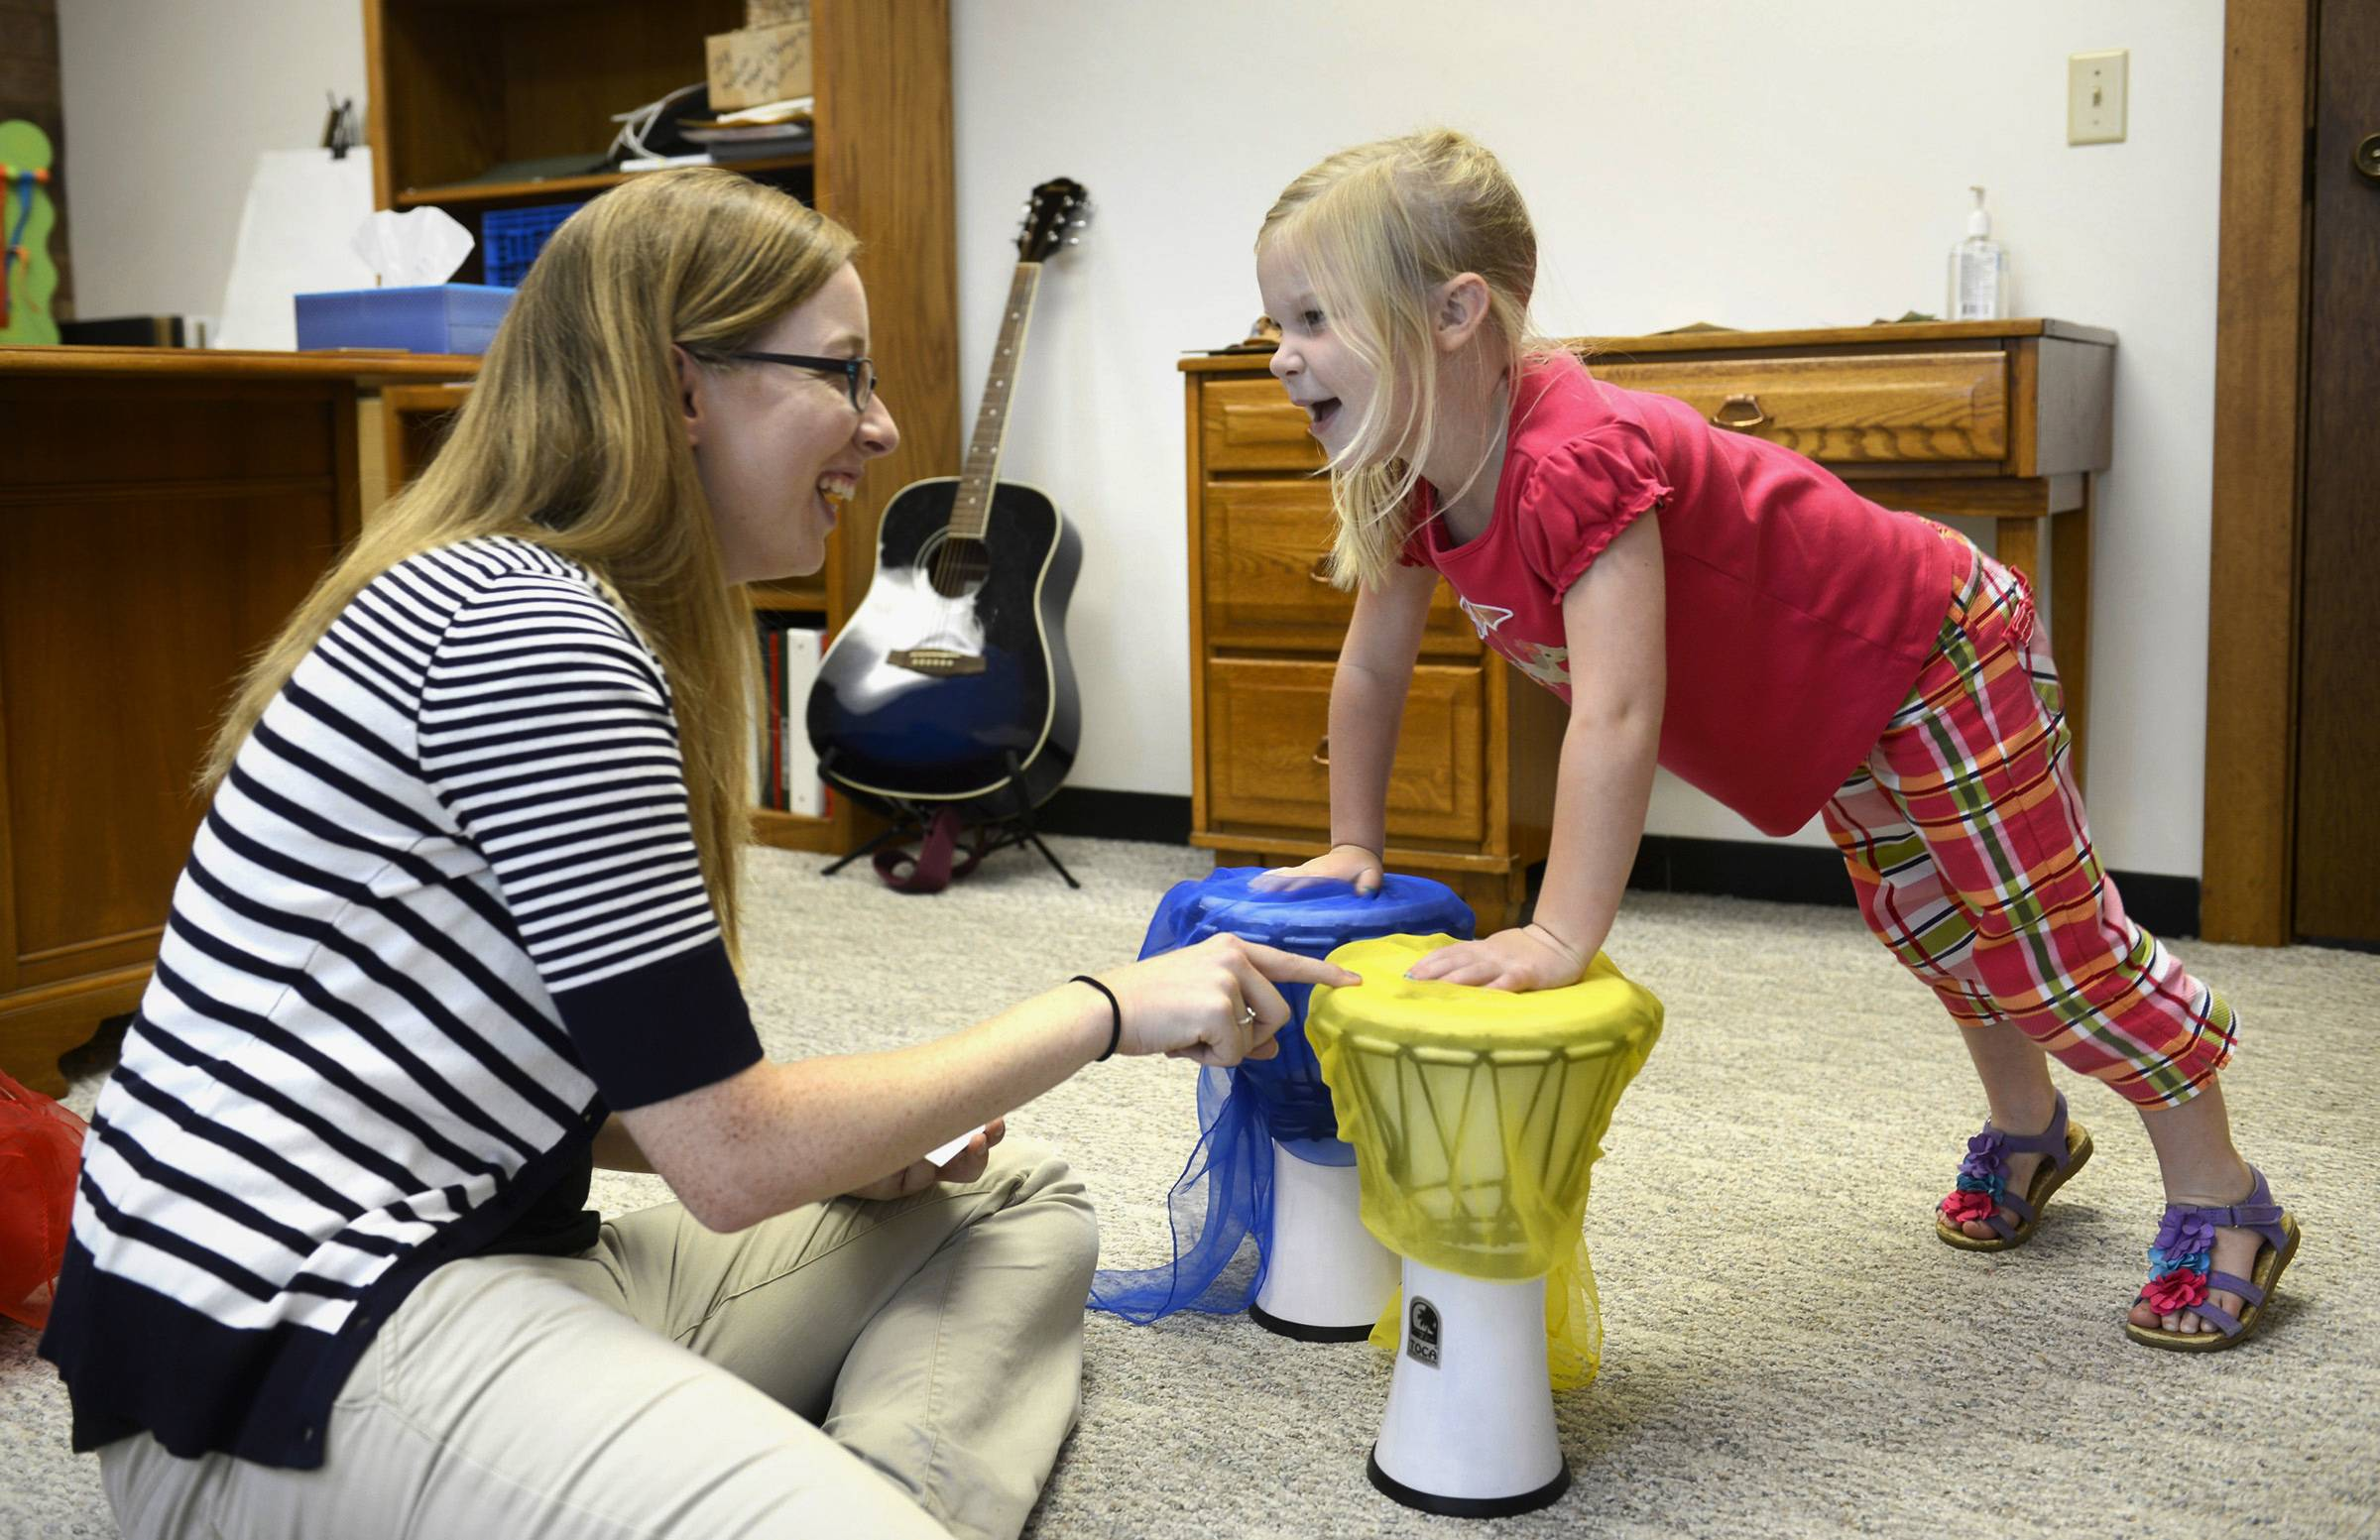 Music therapist Katie Fitch laughs with Ava Taylor, 5, during a session using drums to challenge Taylor's information processing at First Christian Church of Peoria.